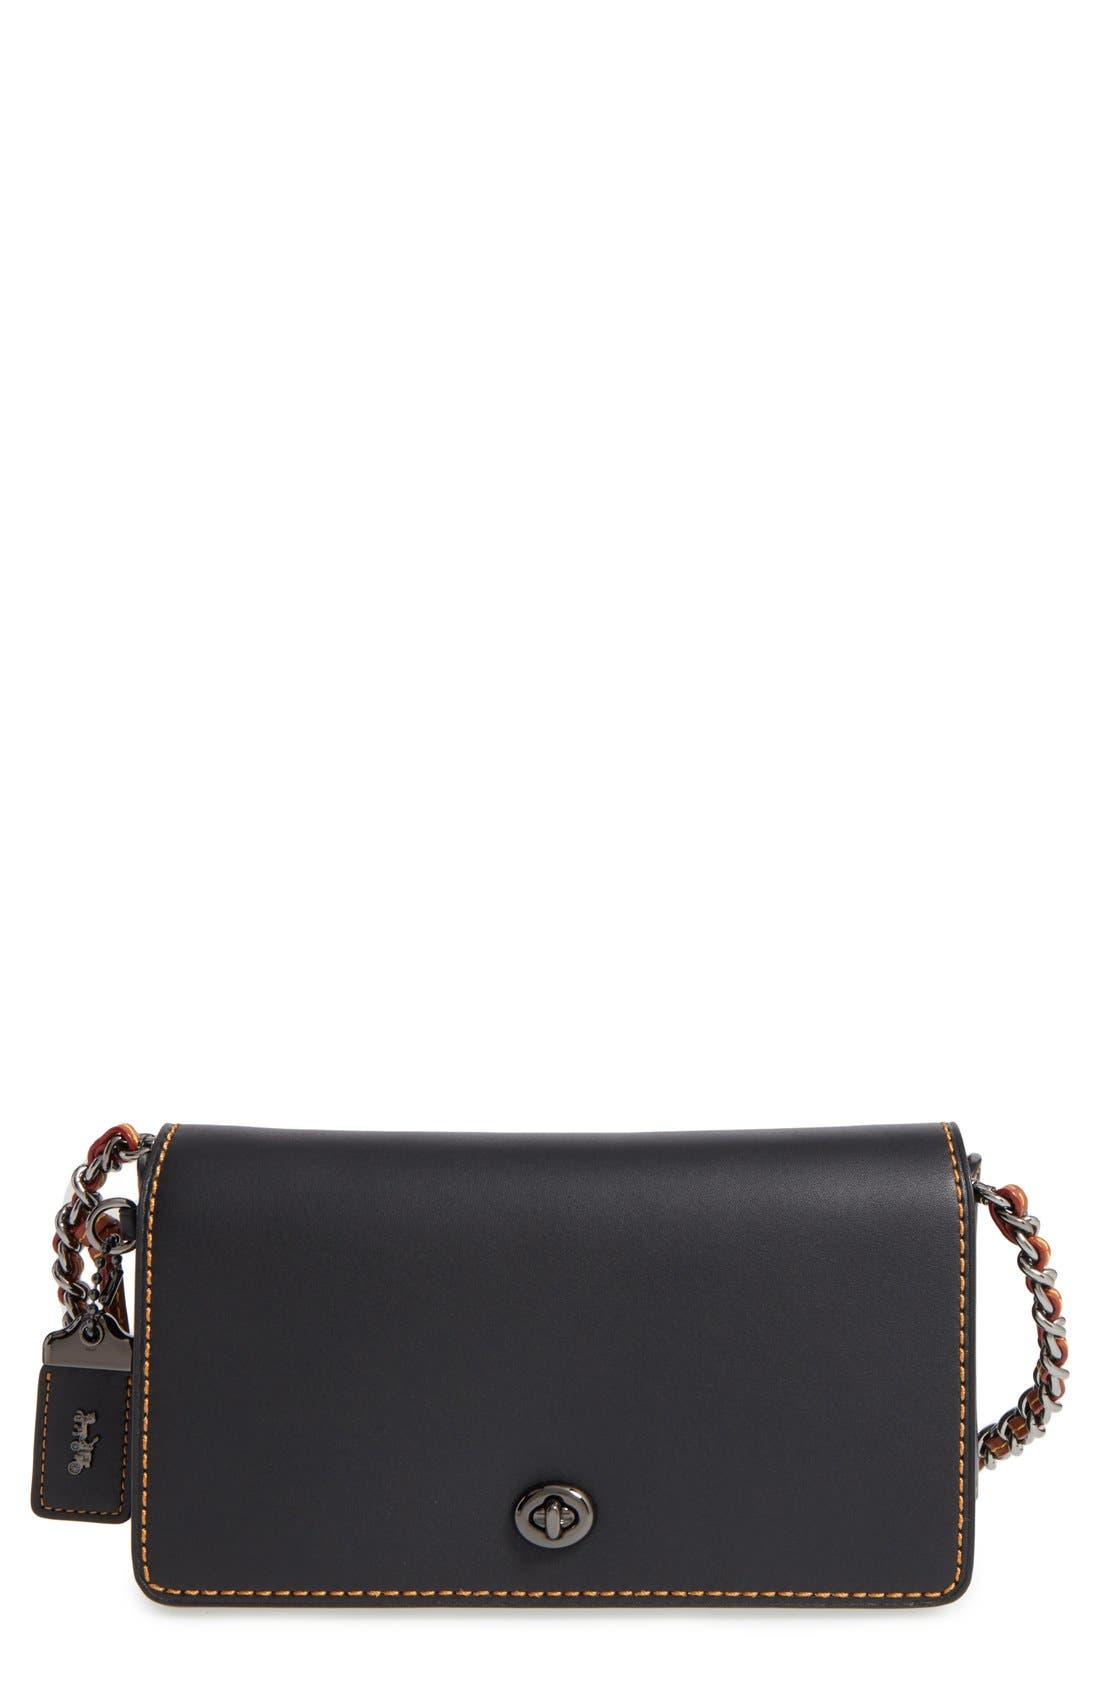 Main Image - COACH 1941 'Dinky' Leather Crossbody Bag